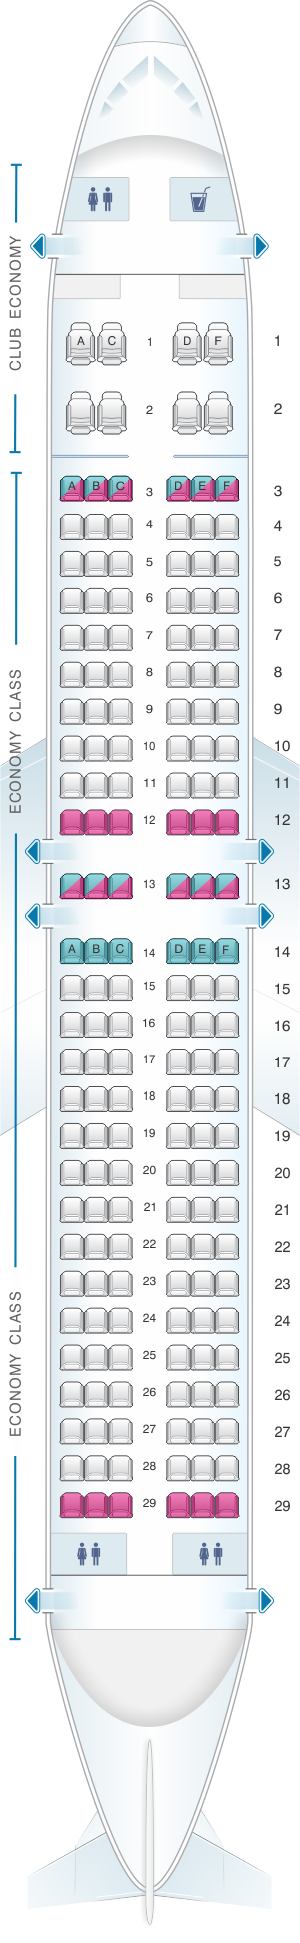 Seat map for Aerolineas Argentinas Boeing B737 MAX 8